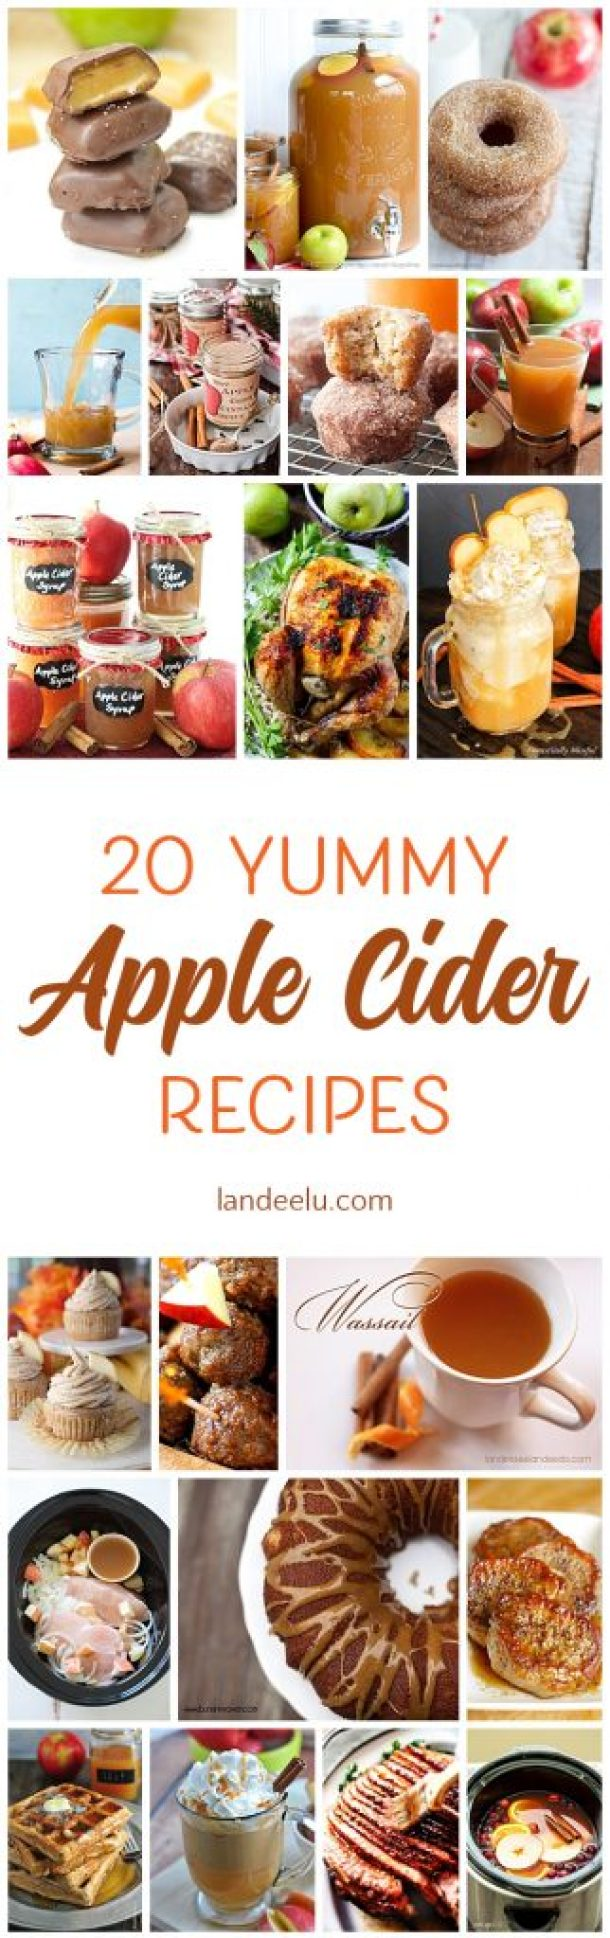 Apple cider flavored recipes to ring in the fall weather!